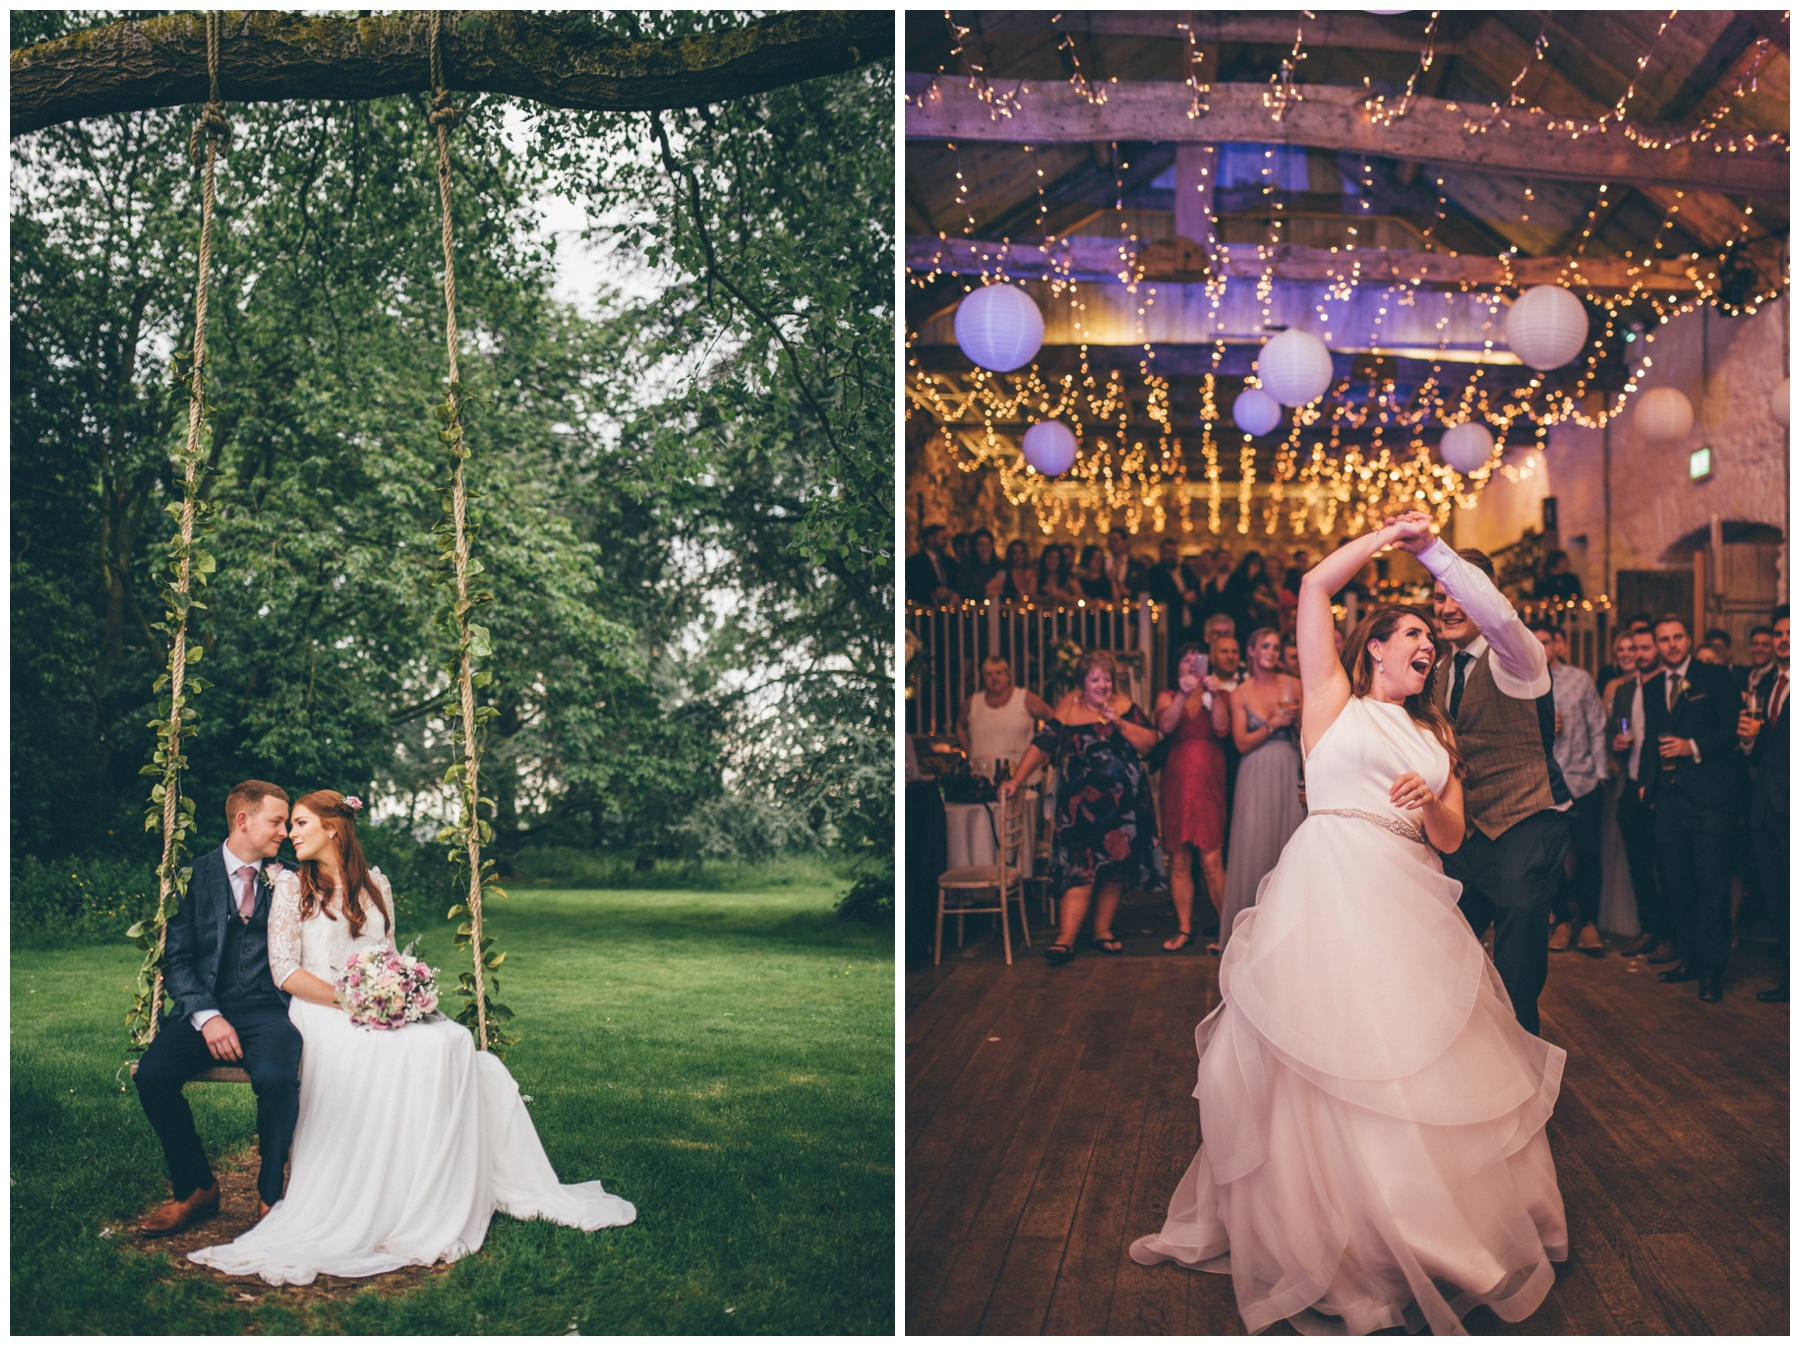 Trafford Hall wedding and the First Dance at an Askham Hall wedding.